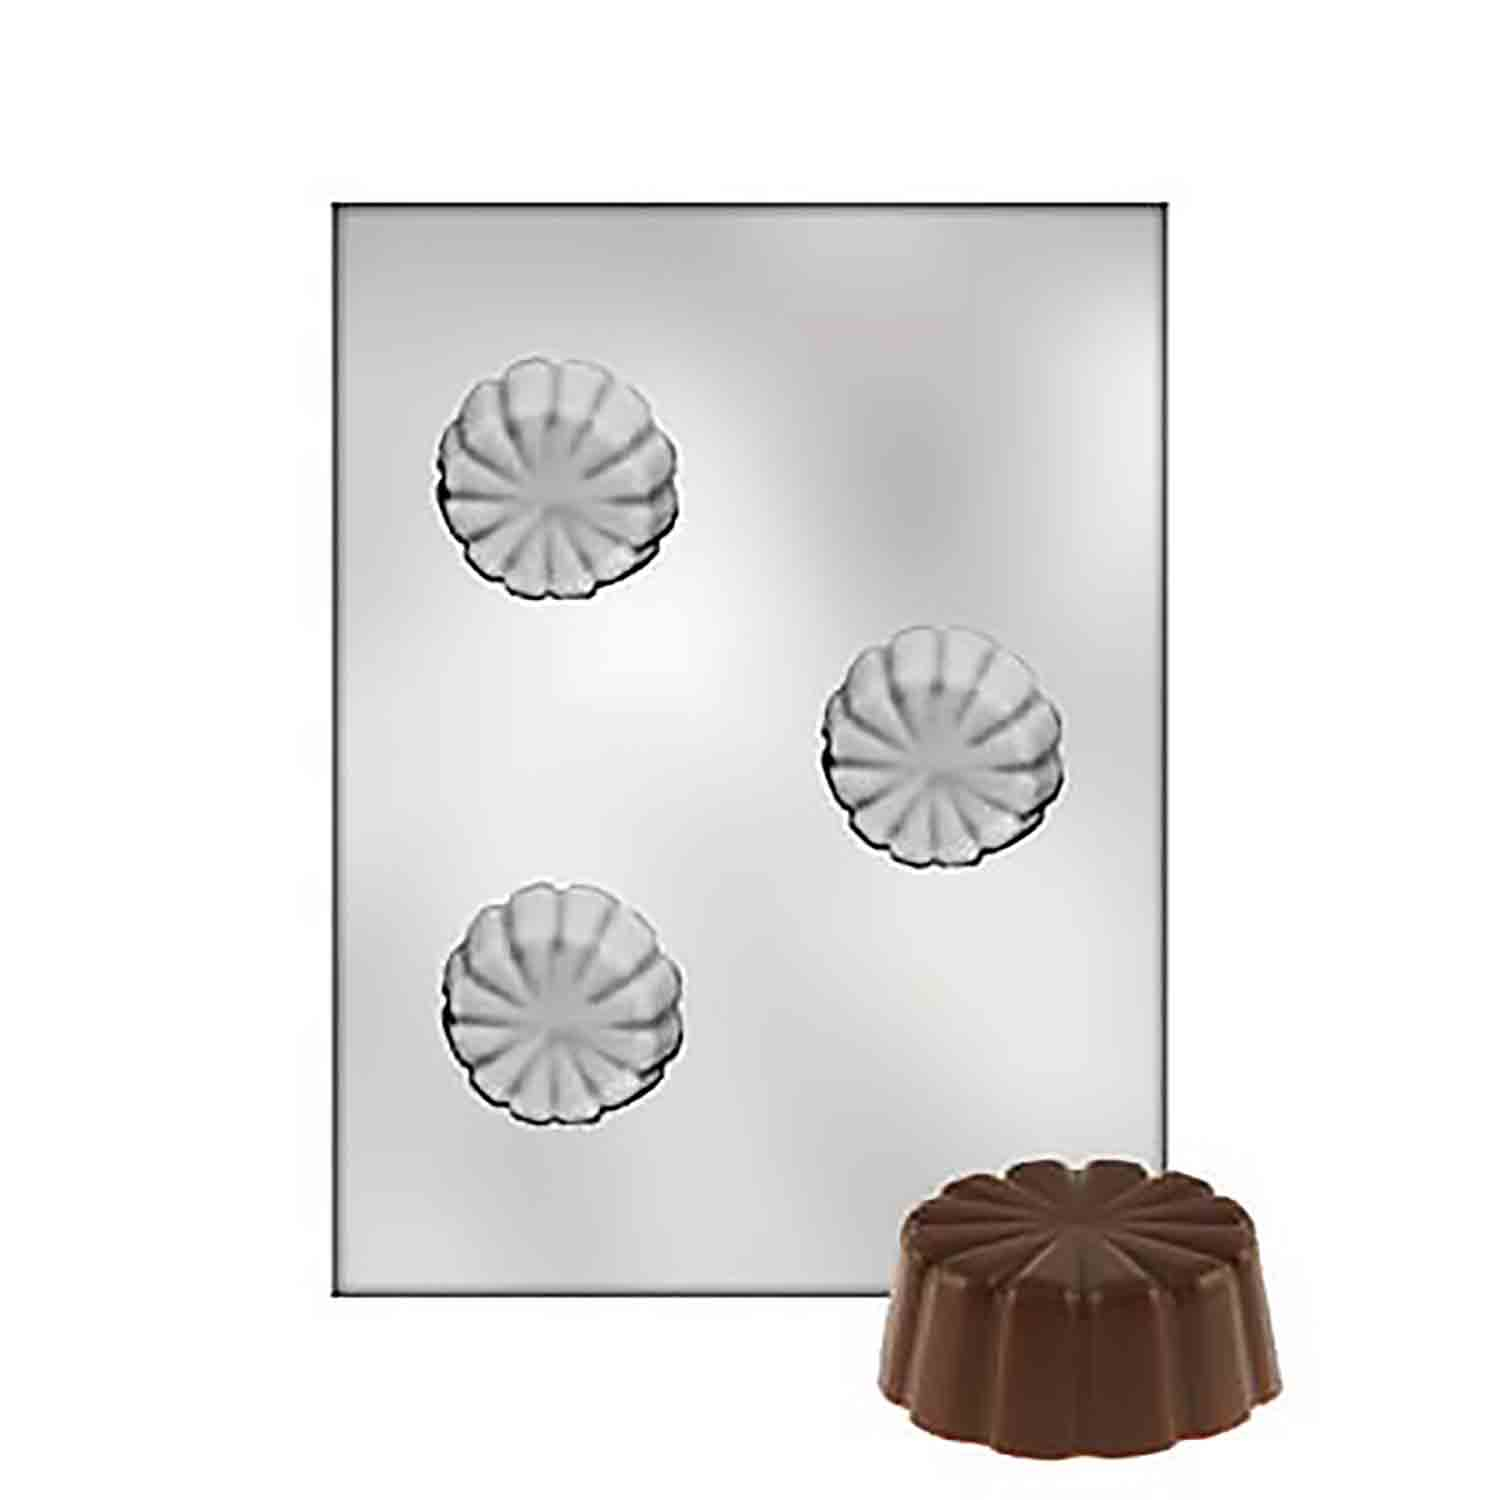 Ice Cream Shell/Dessert Dish Chocolate Candy Mold